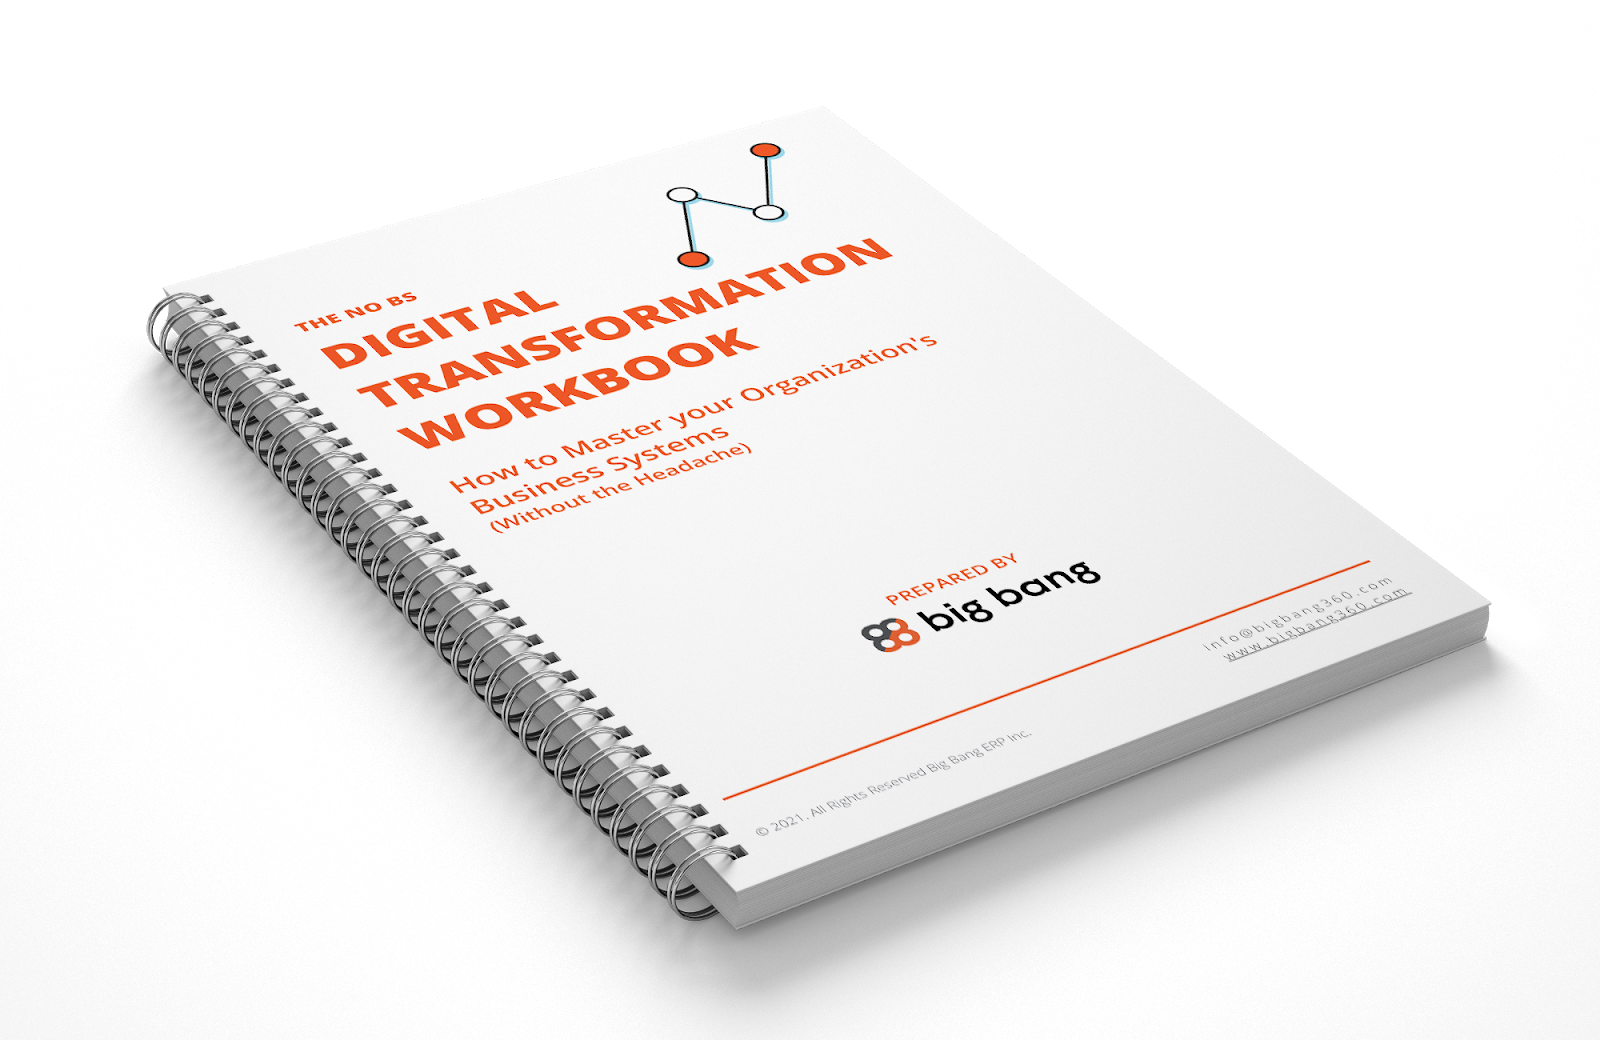 No BS Digital Transformation Workbook, Now Available for Free